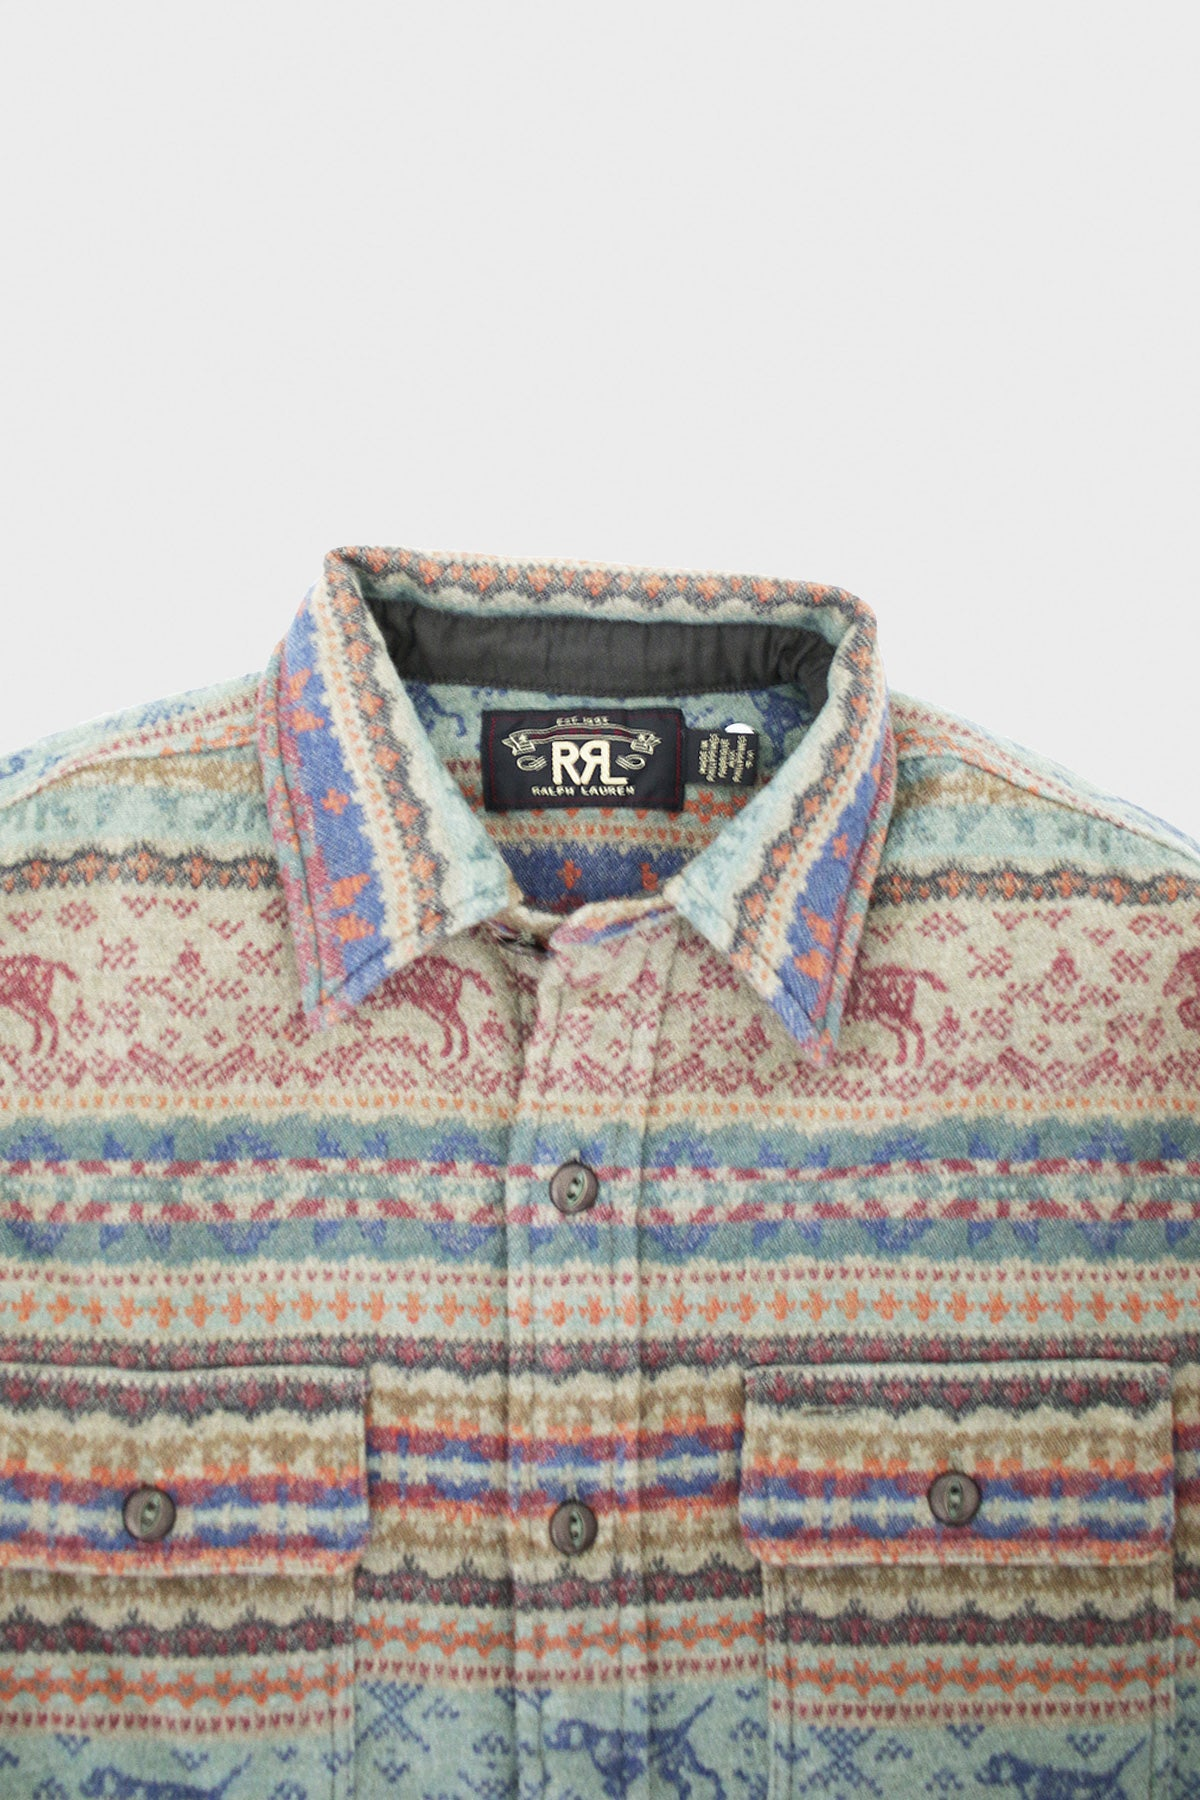 RRL - Fair Isle Jacquard Workshirt - Grey/Multi - Canoe Club